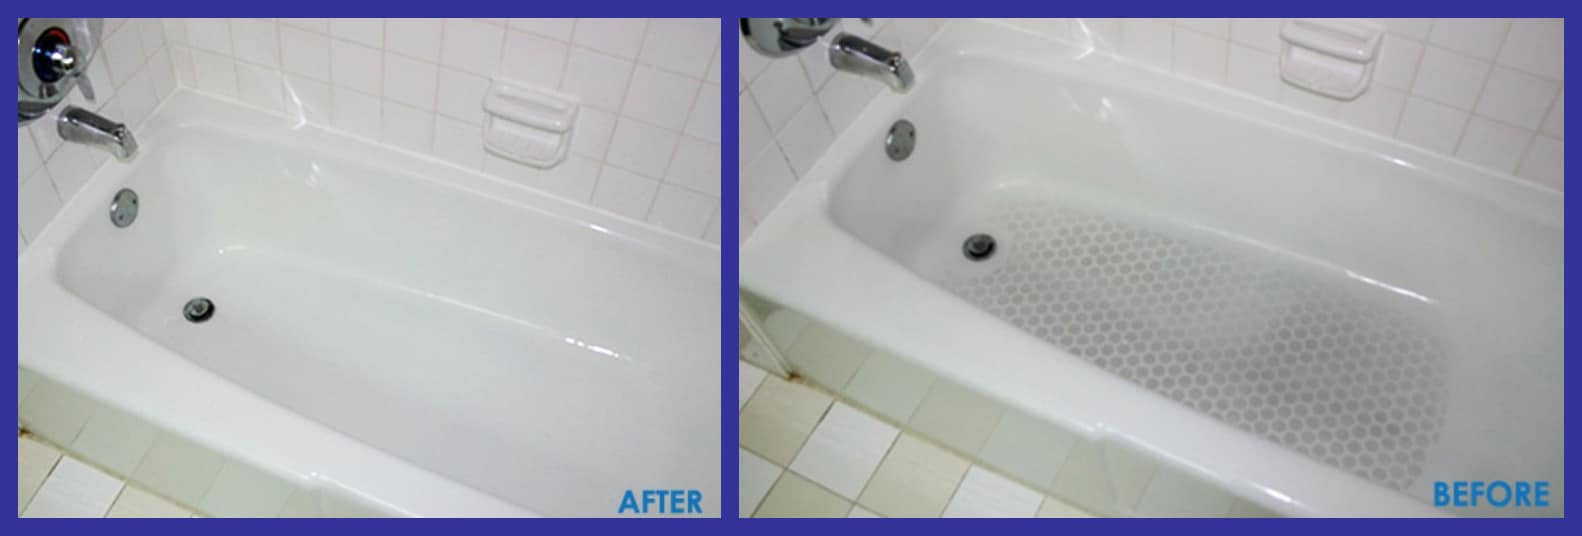 Wonderful ROG3 Bathtub And Tile Cleaner